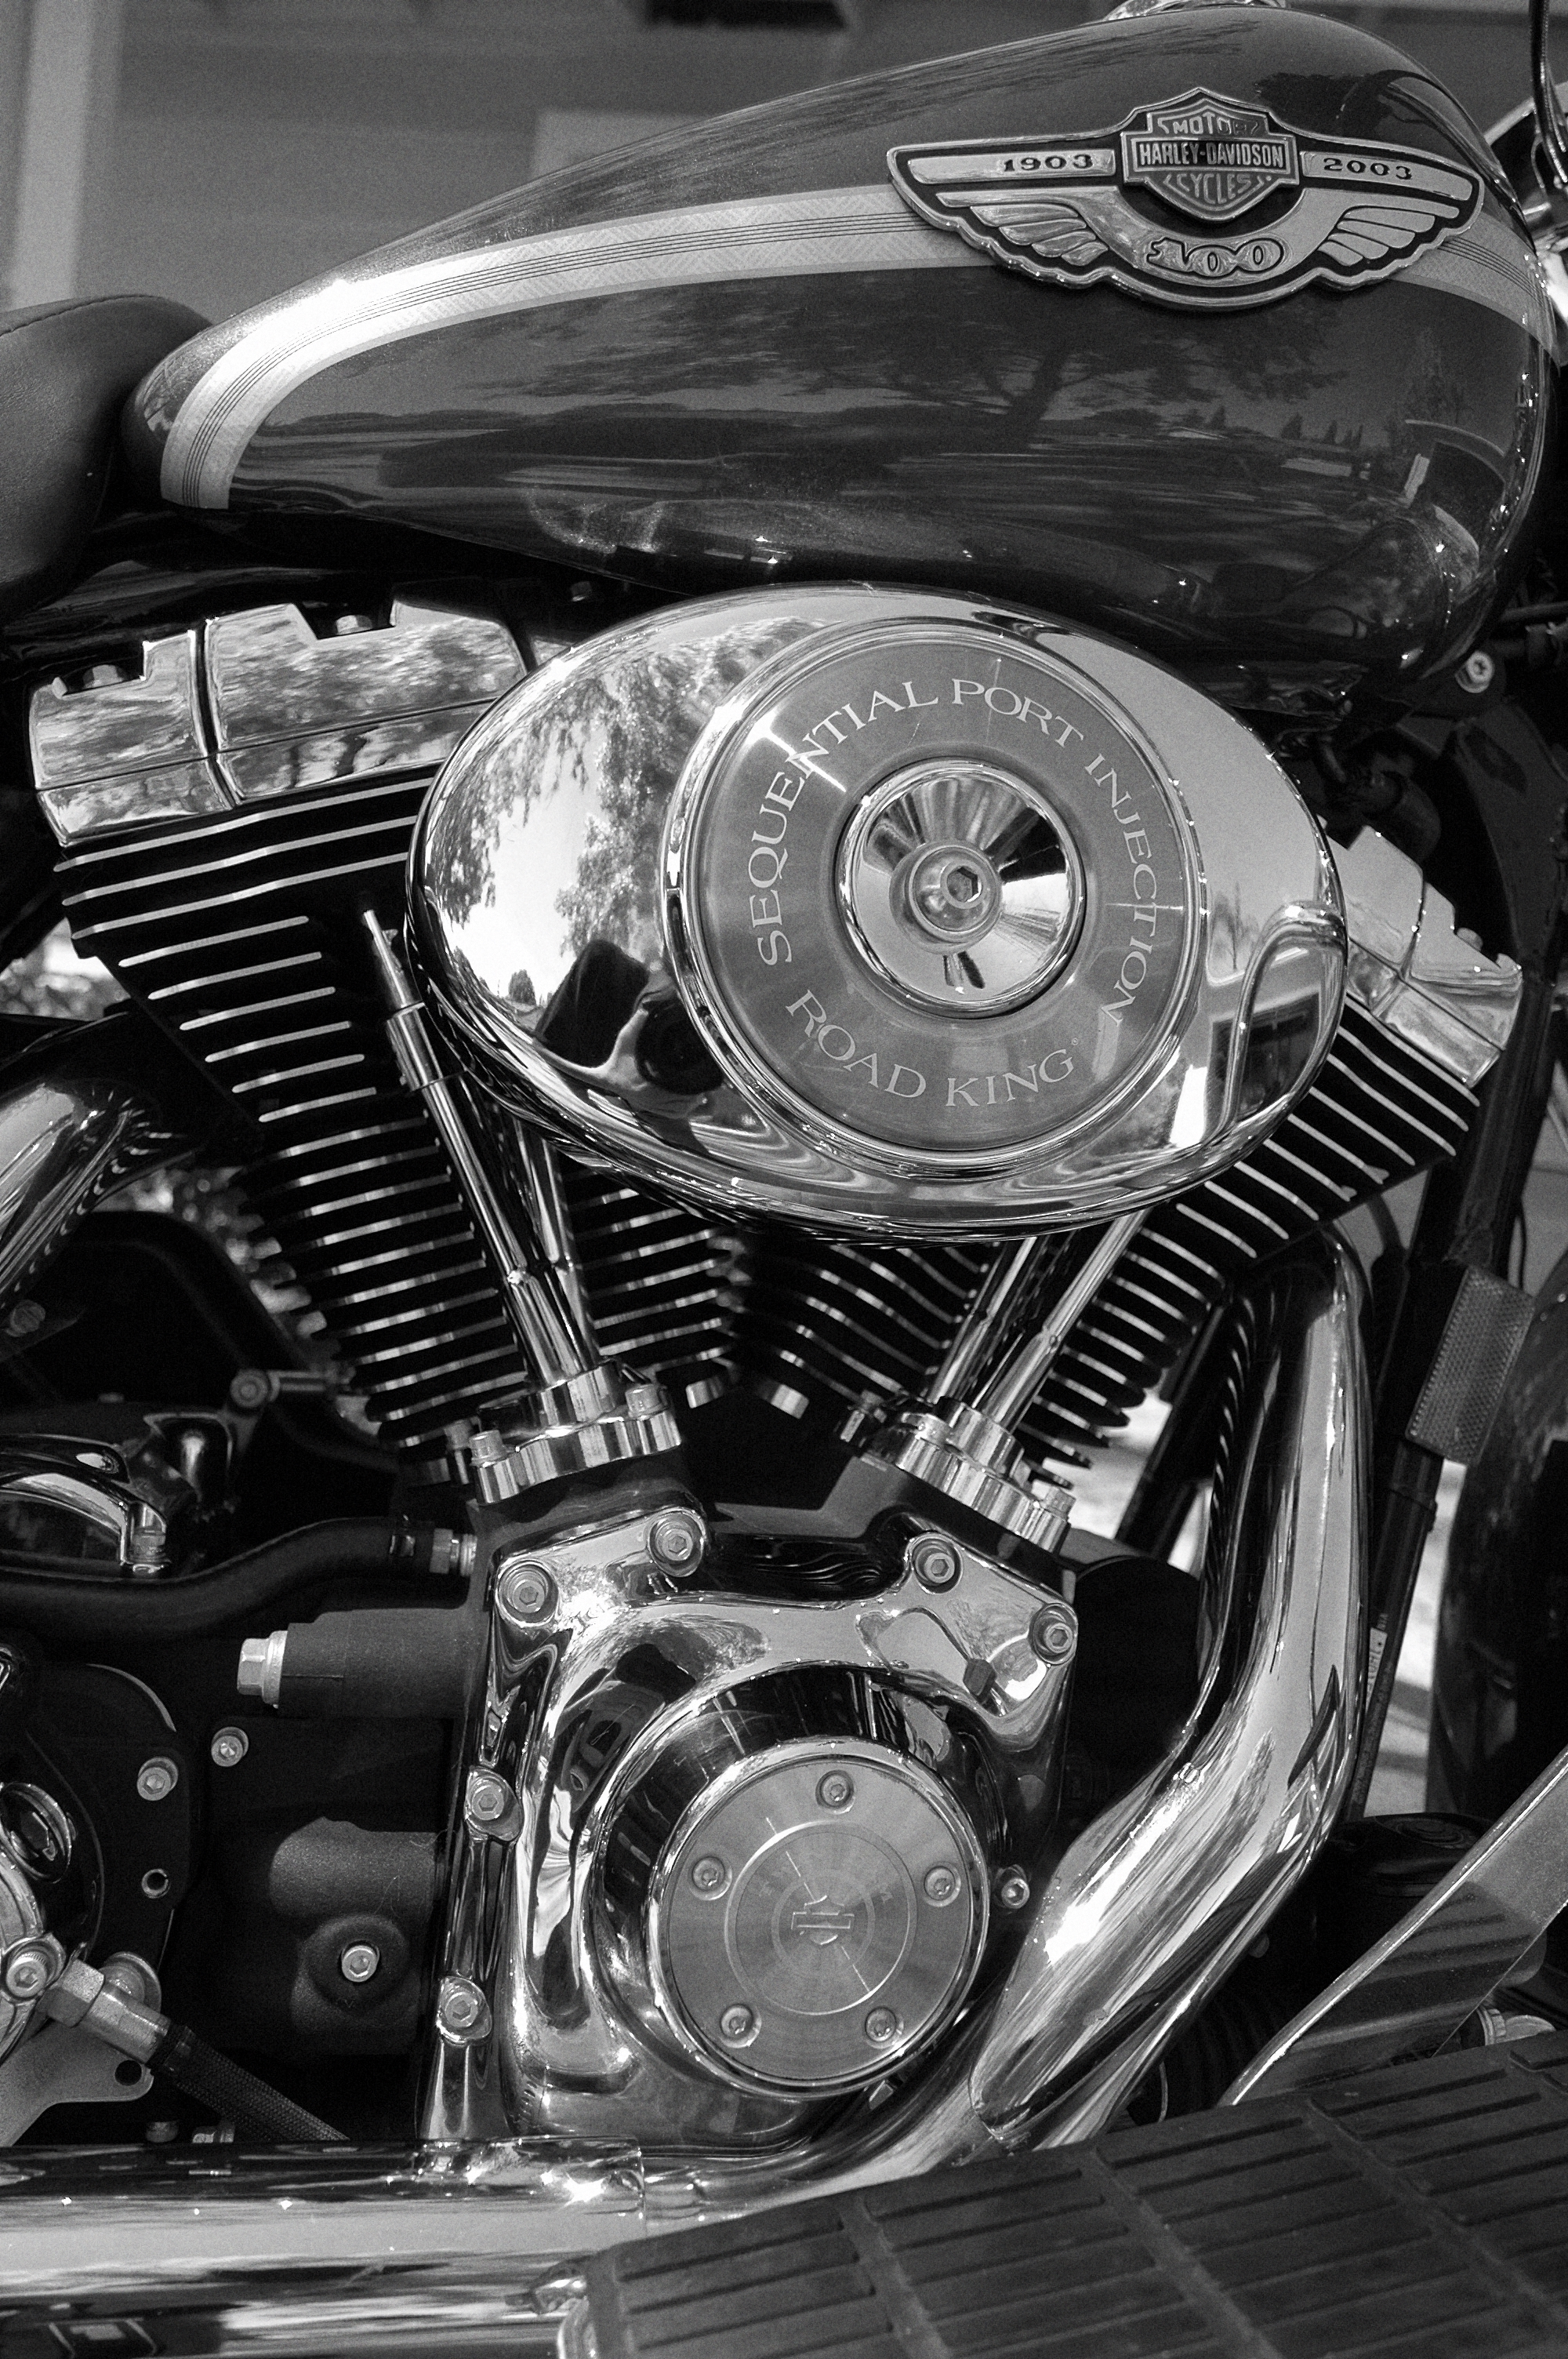 hight resolution of v twin engine wikipedia motorcycle v twin engine diagram